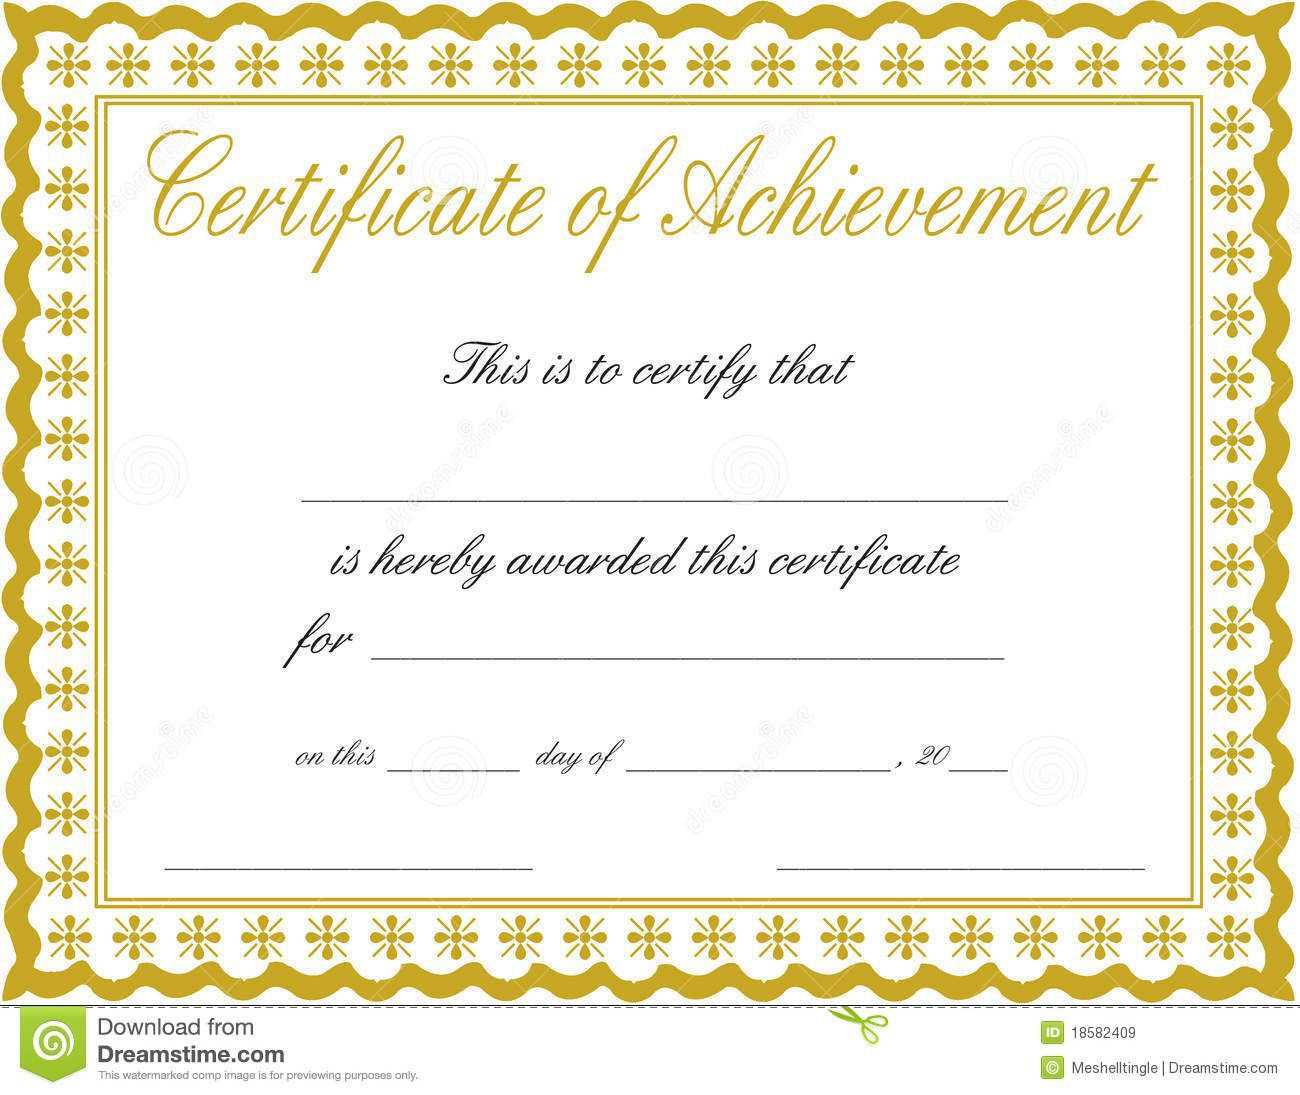 000 Exceptional Certificate Of Achievement Template Free High Def  Award Download WordFull